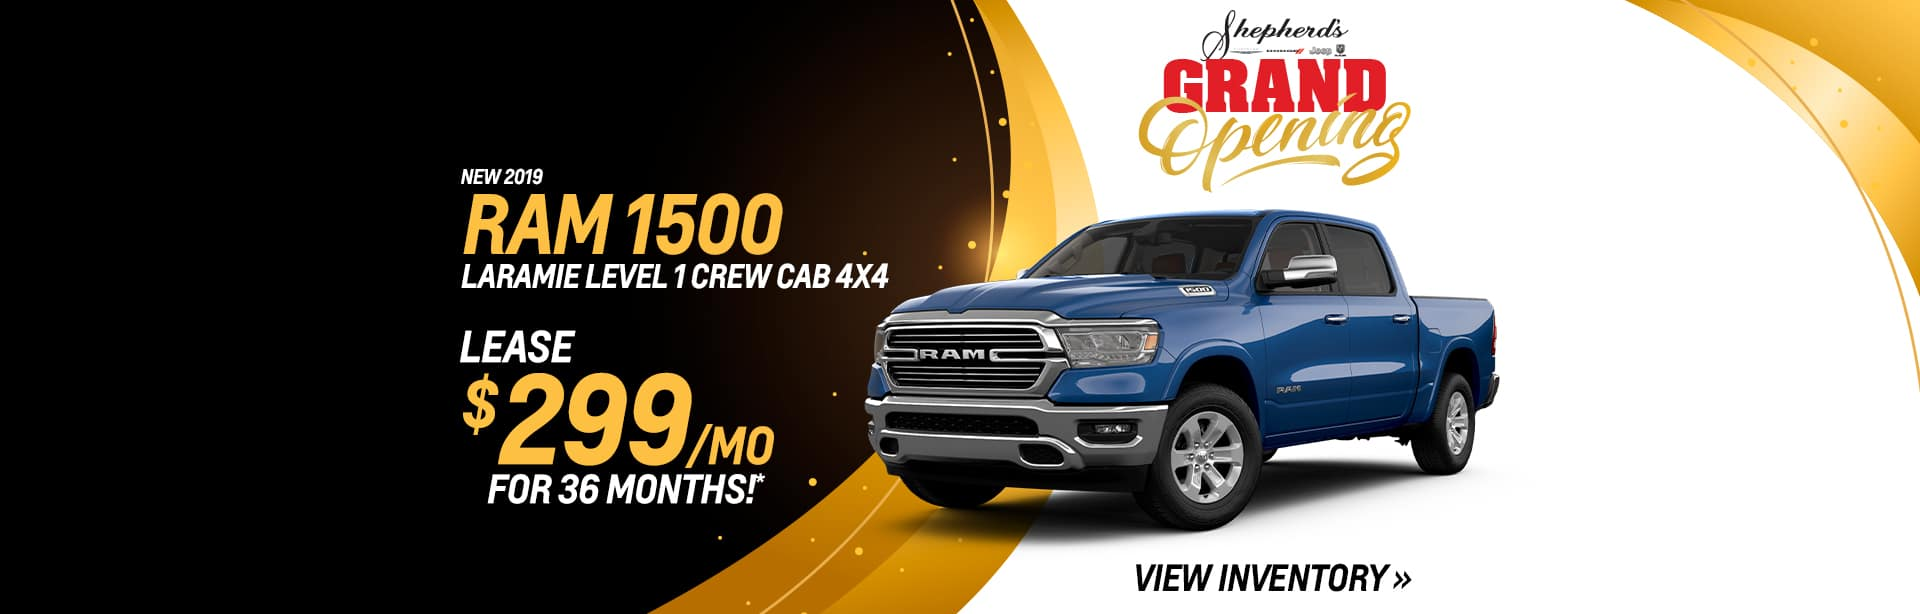 Lease a new RAM 1500 for $299 a month in Auburn, Indiana